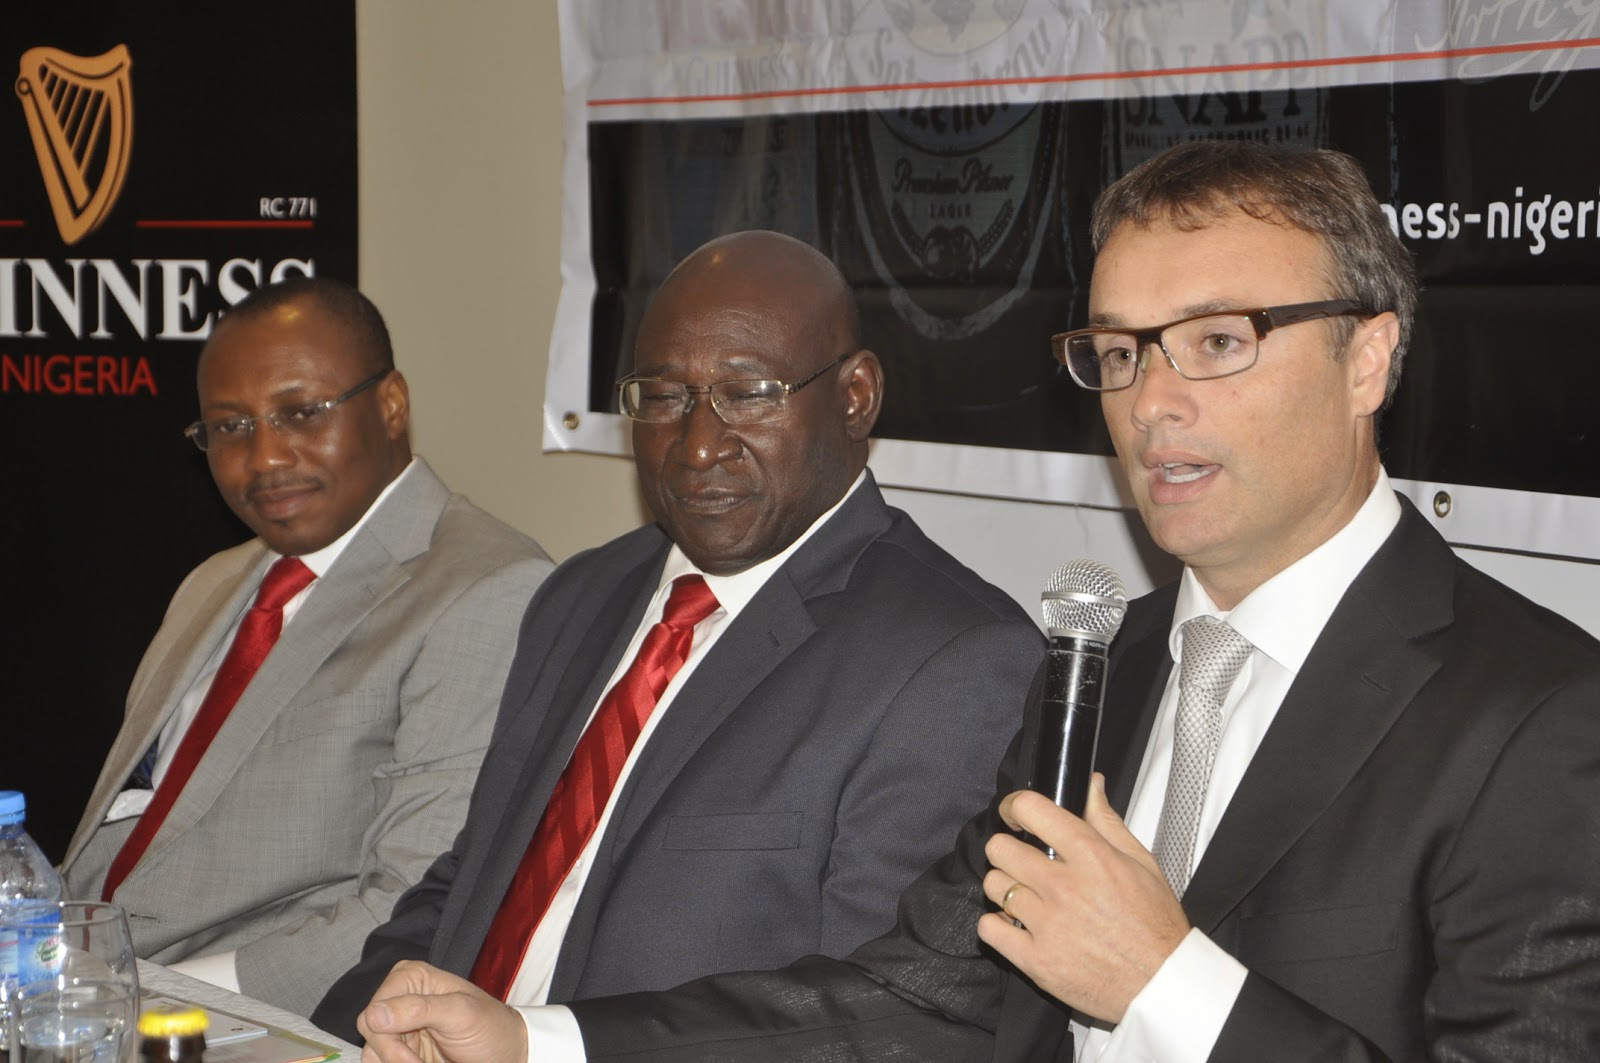 L-R: Mr. Seni Adetu, Outgoing MD/CEO Guinness Nigeria Plc; Mr. Babatunde Savage, Chairman, Guinness Nigeria Plc; and Mr. John O'Keeffe, incoming MD/CEO